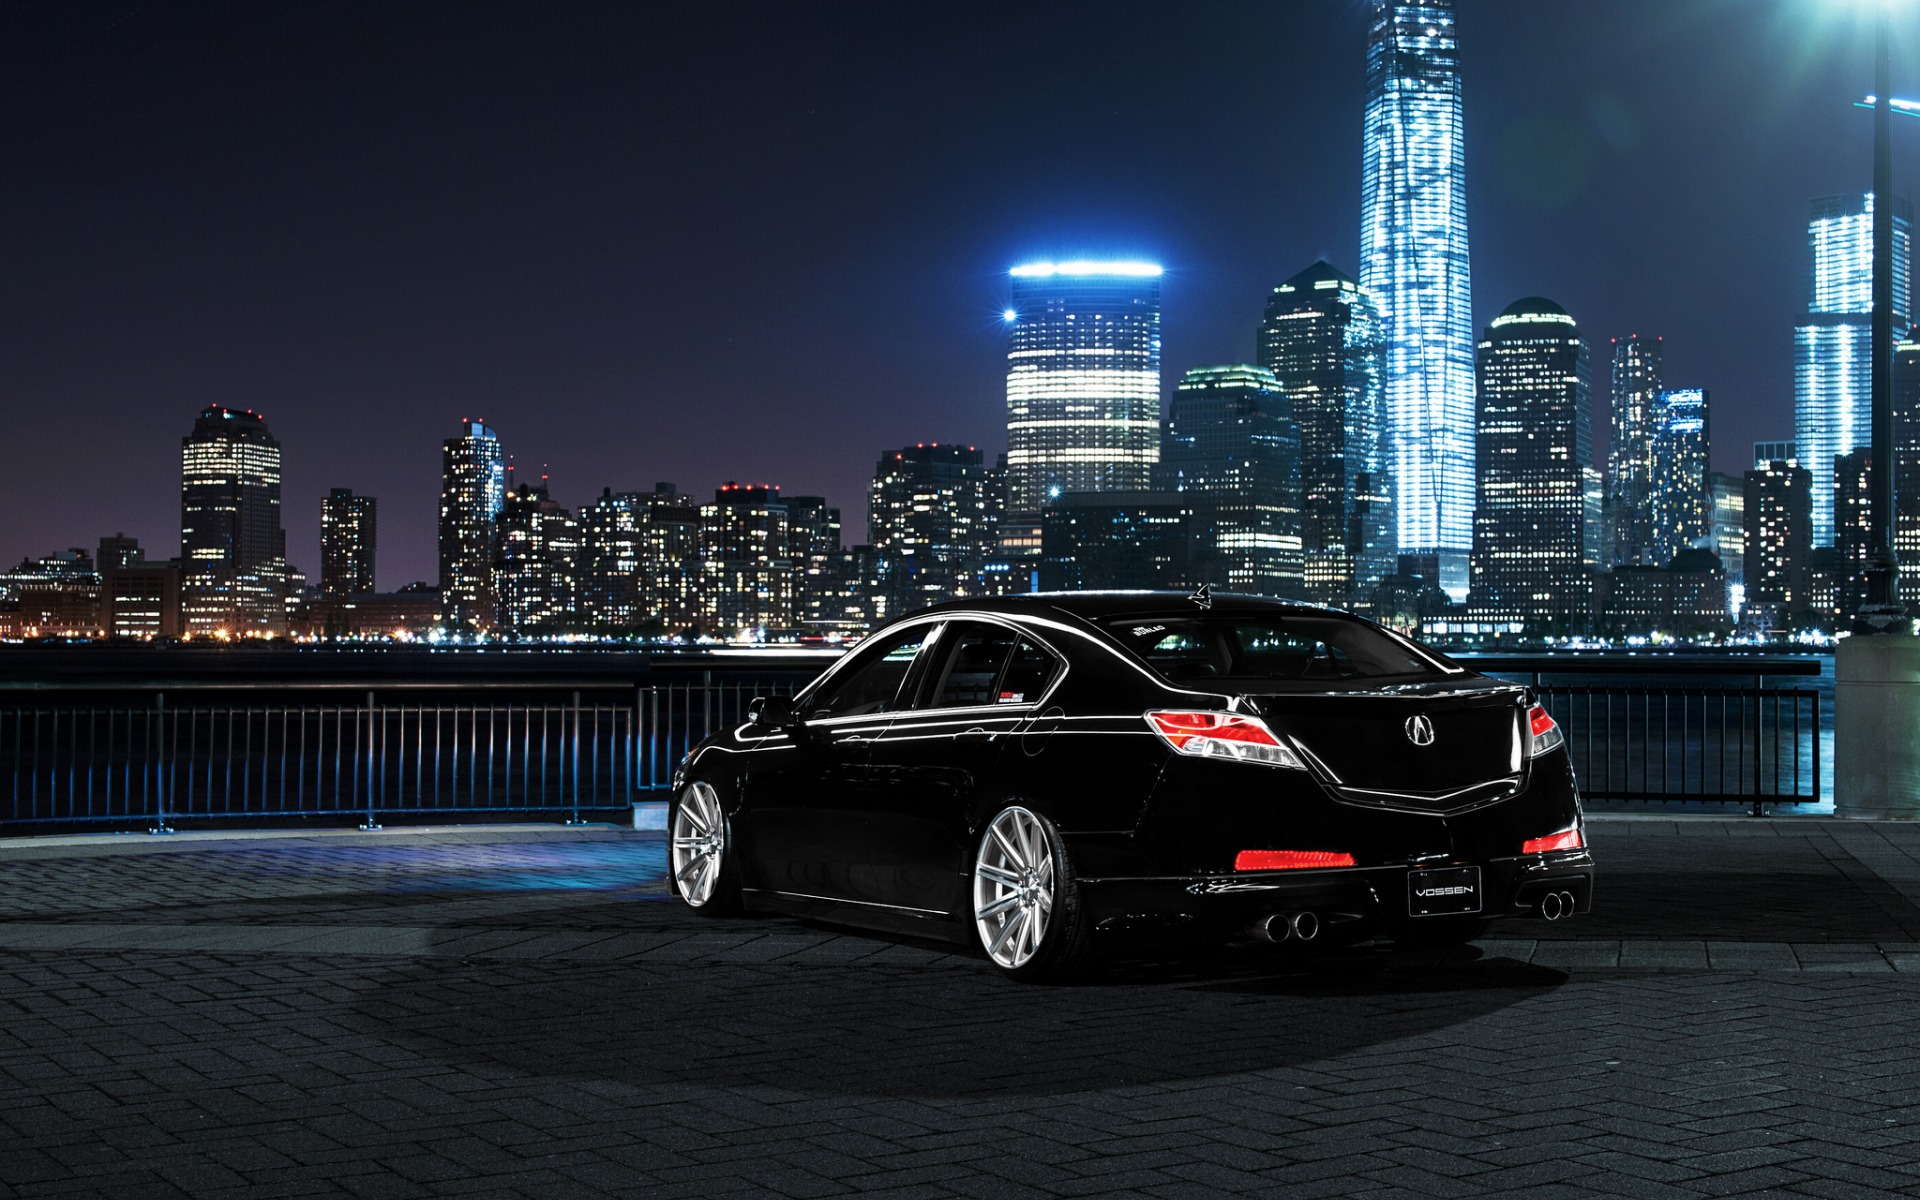 Acura Tl Hd Wallpaper Background Image 1920x1200